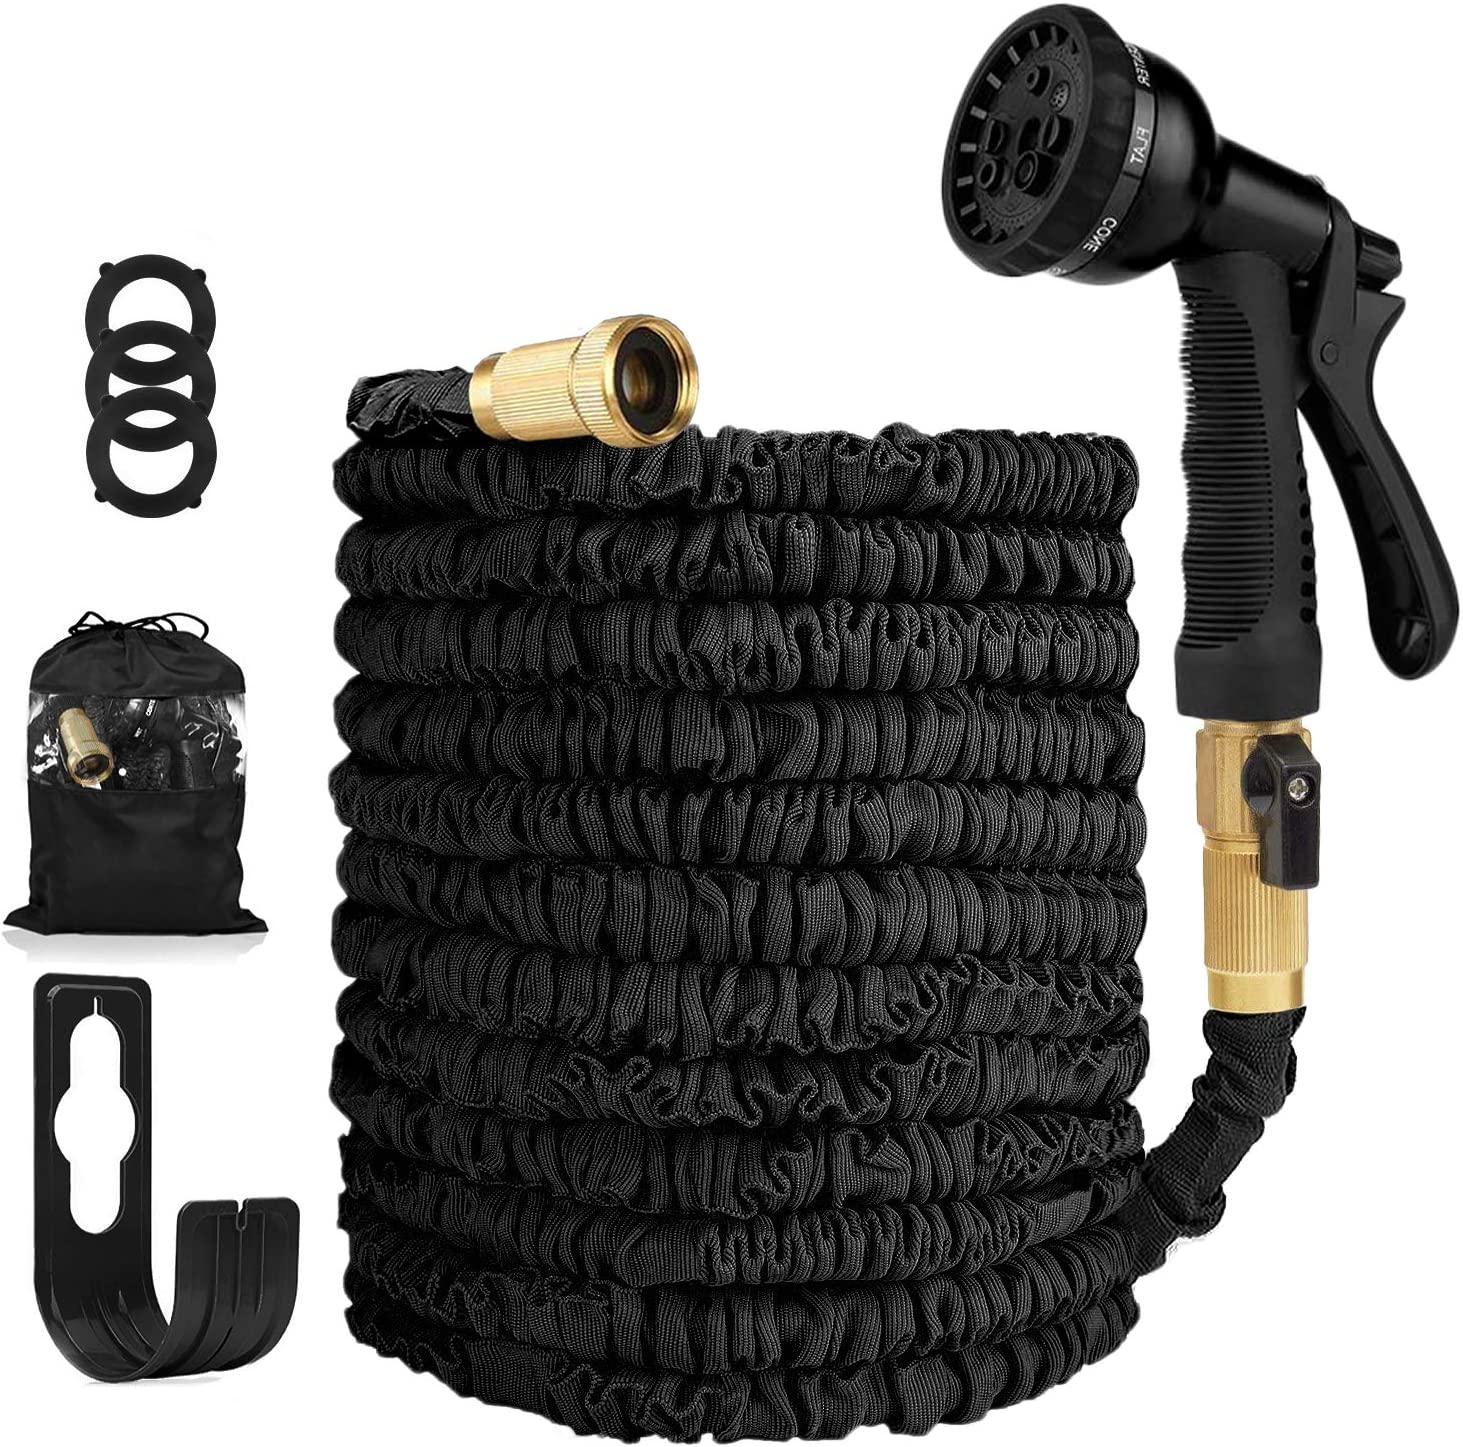 Garden Hose Expandable Hose - Heavy Duty Flexible Leakproof Hose - 8-Pattern High-Pressure Water Spray Nozzle & Bag & Plastic Holder.No Kink Tangle-Free Pocket Water Hose -Black (100FT Garden Hose)